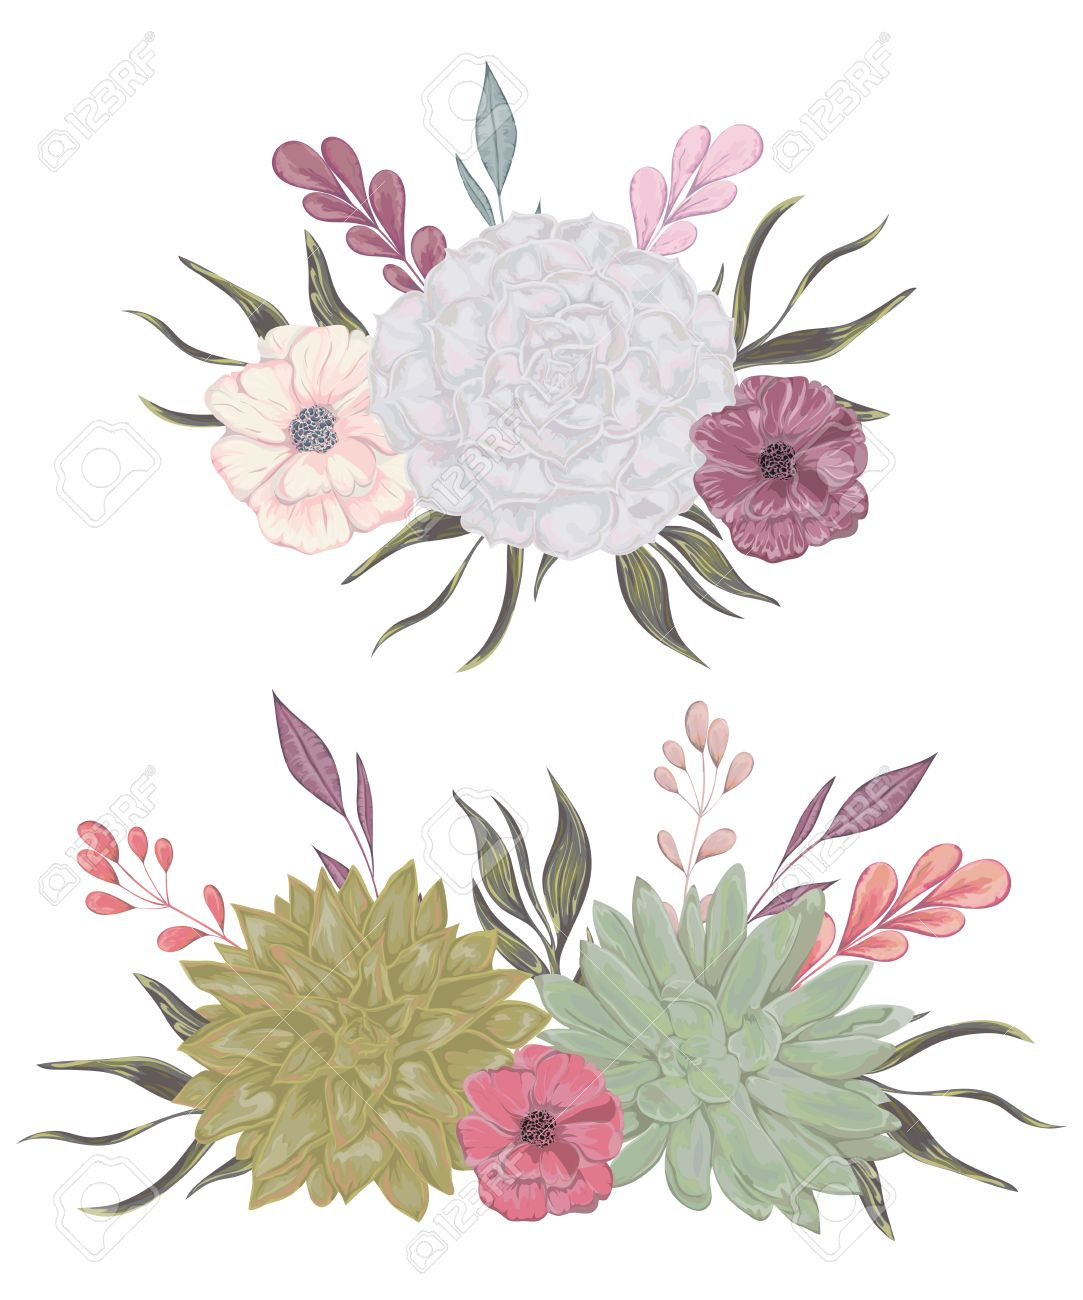 Collection decorative floral design elements for wedding invitations collection decorative floral design elements for wedding invitations and birthday cards succulents flowers and junglespirit Images